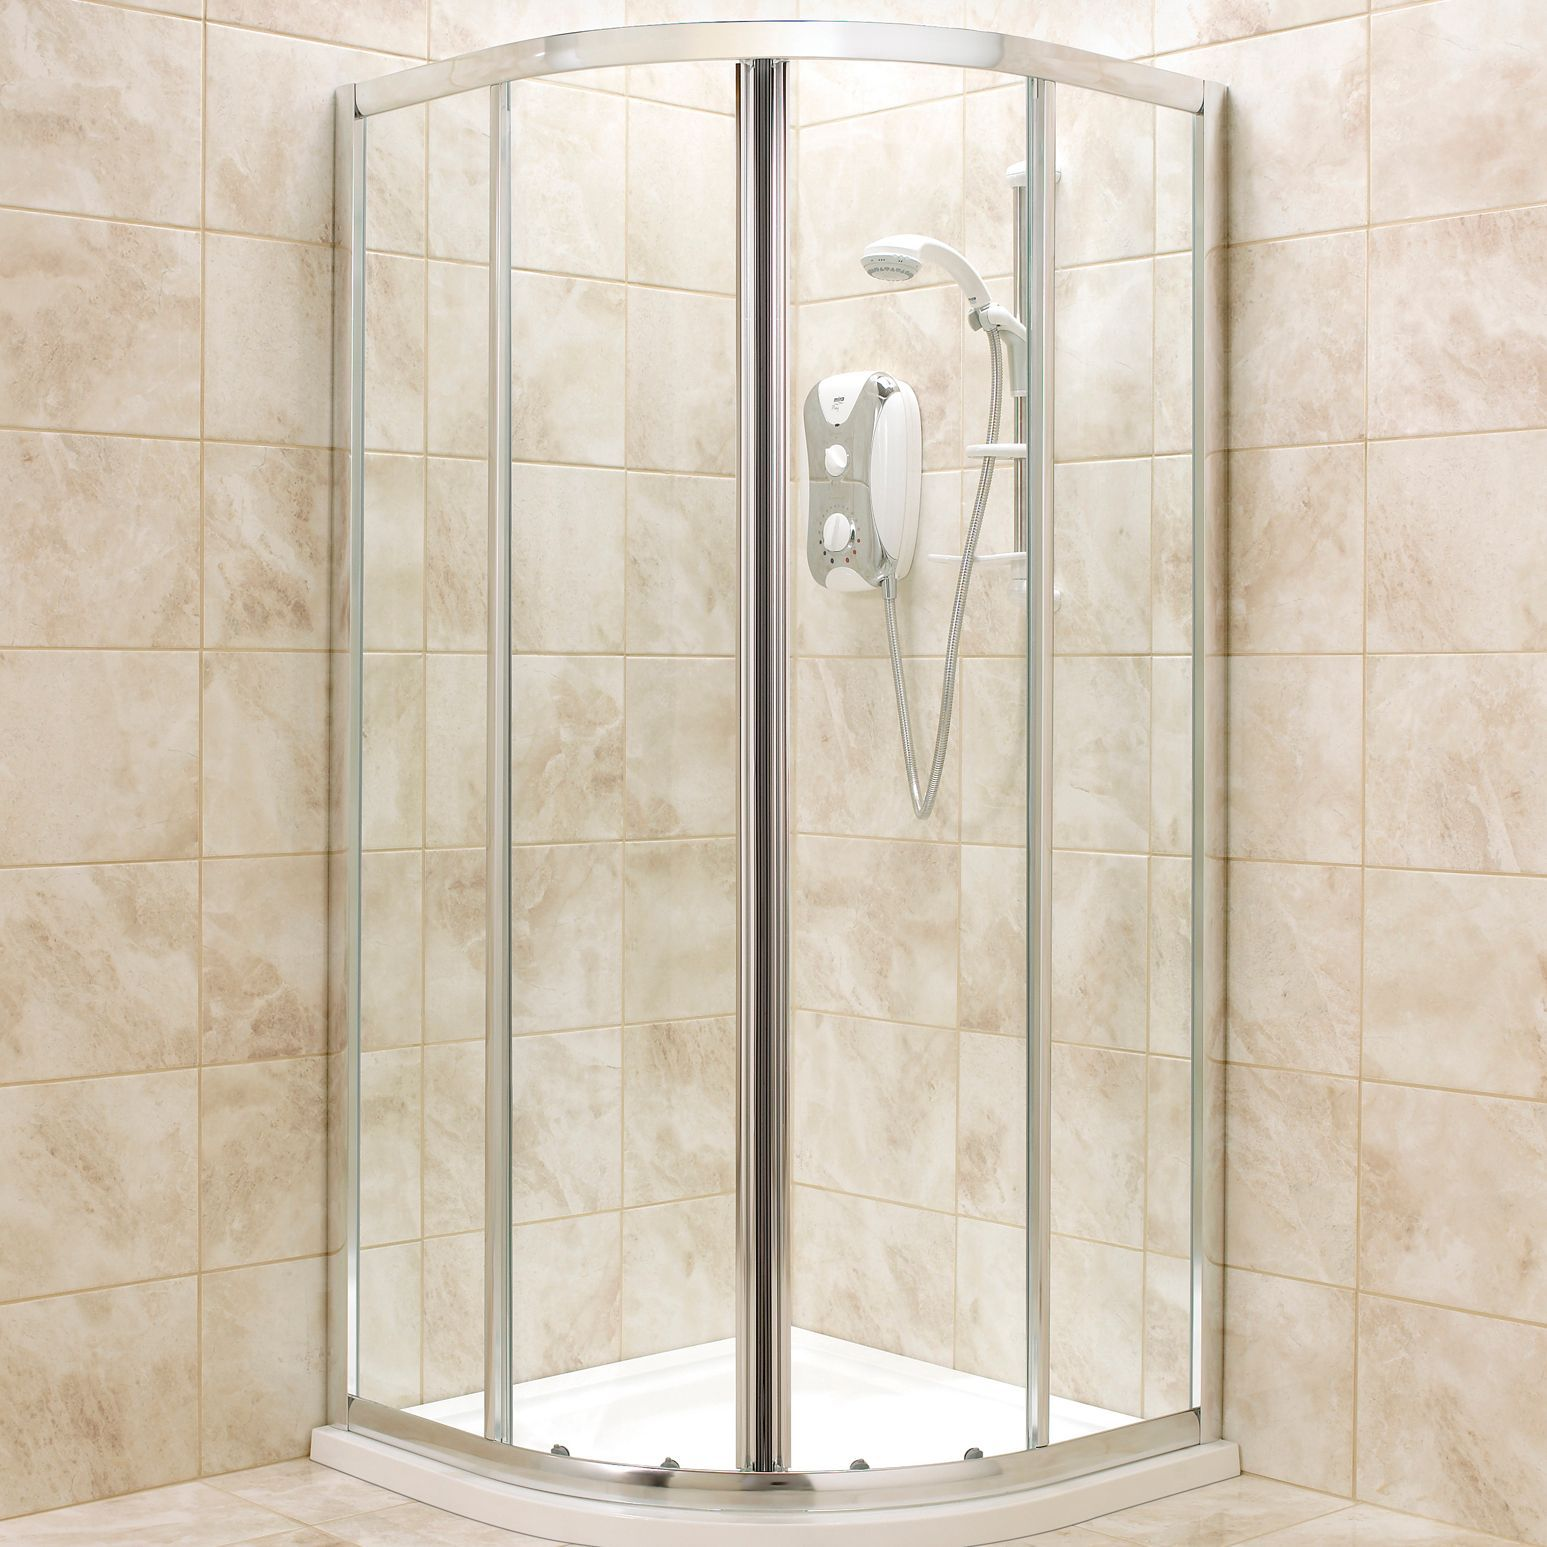 U shaped shower curtain rail b and q - B Q Quadrant Shower Enclosure Tray Waste Pack With Double Sliding Doors W 800mm D 800mm Departments Diy At B Q